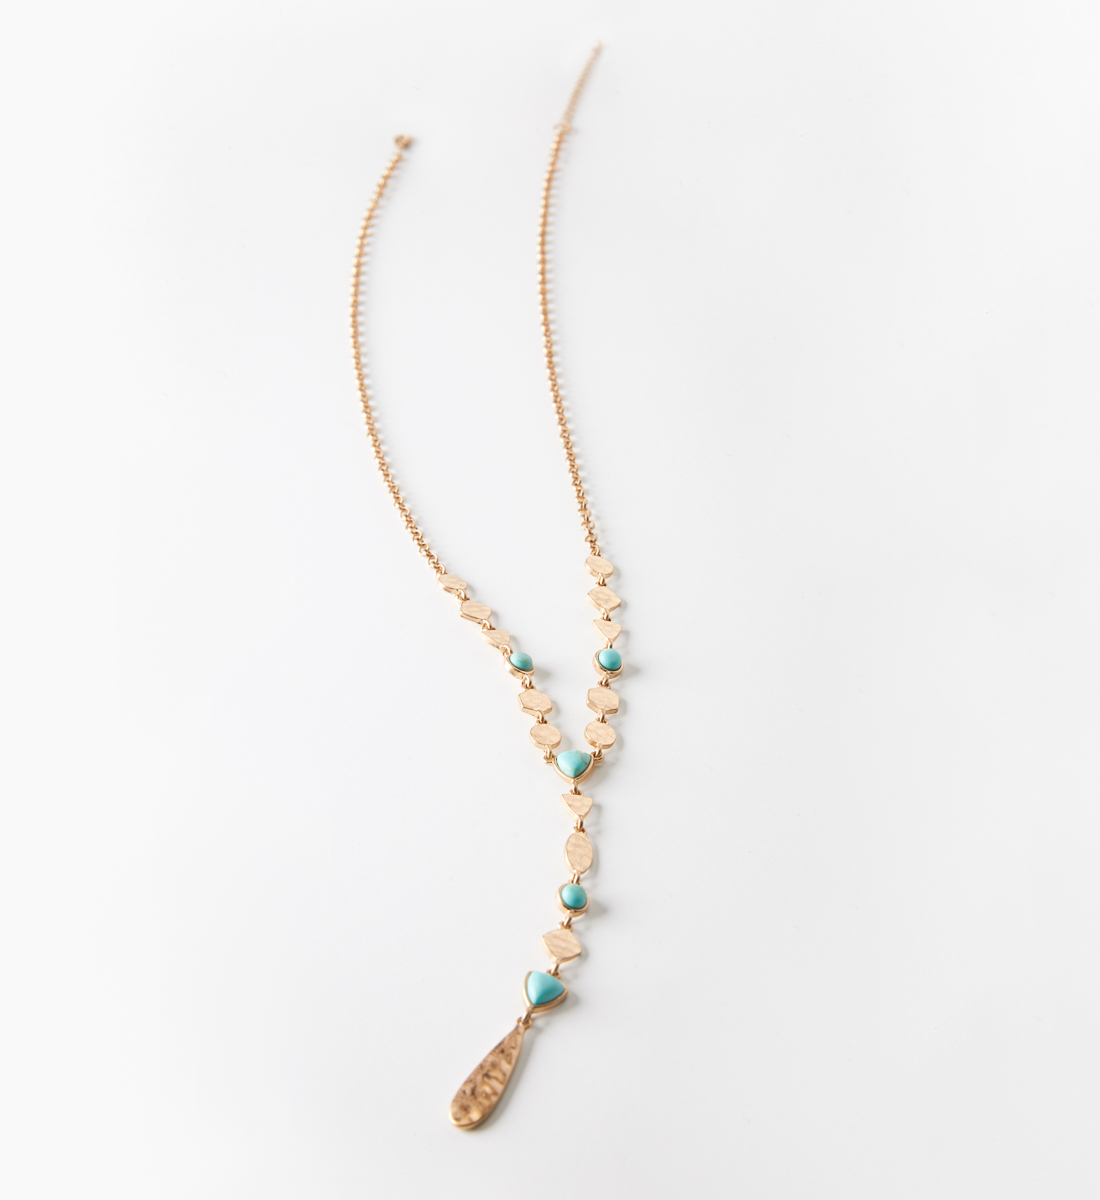 Gold-Tone Turquoise Y Necklace, , hi-res